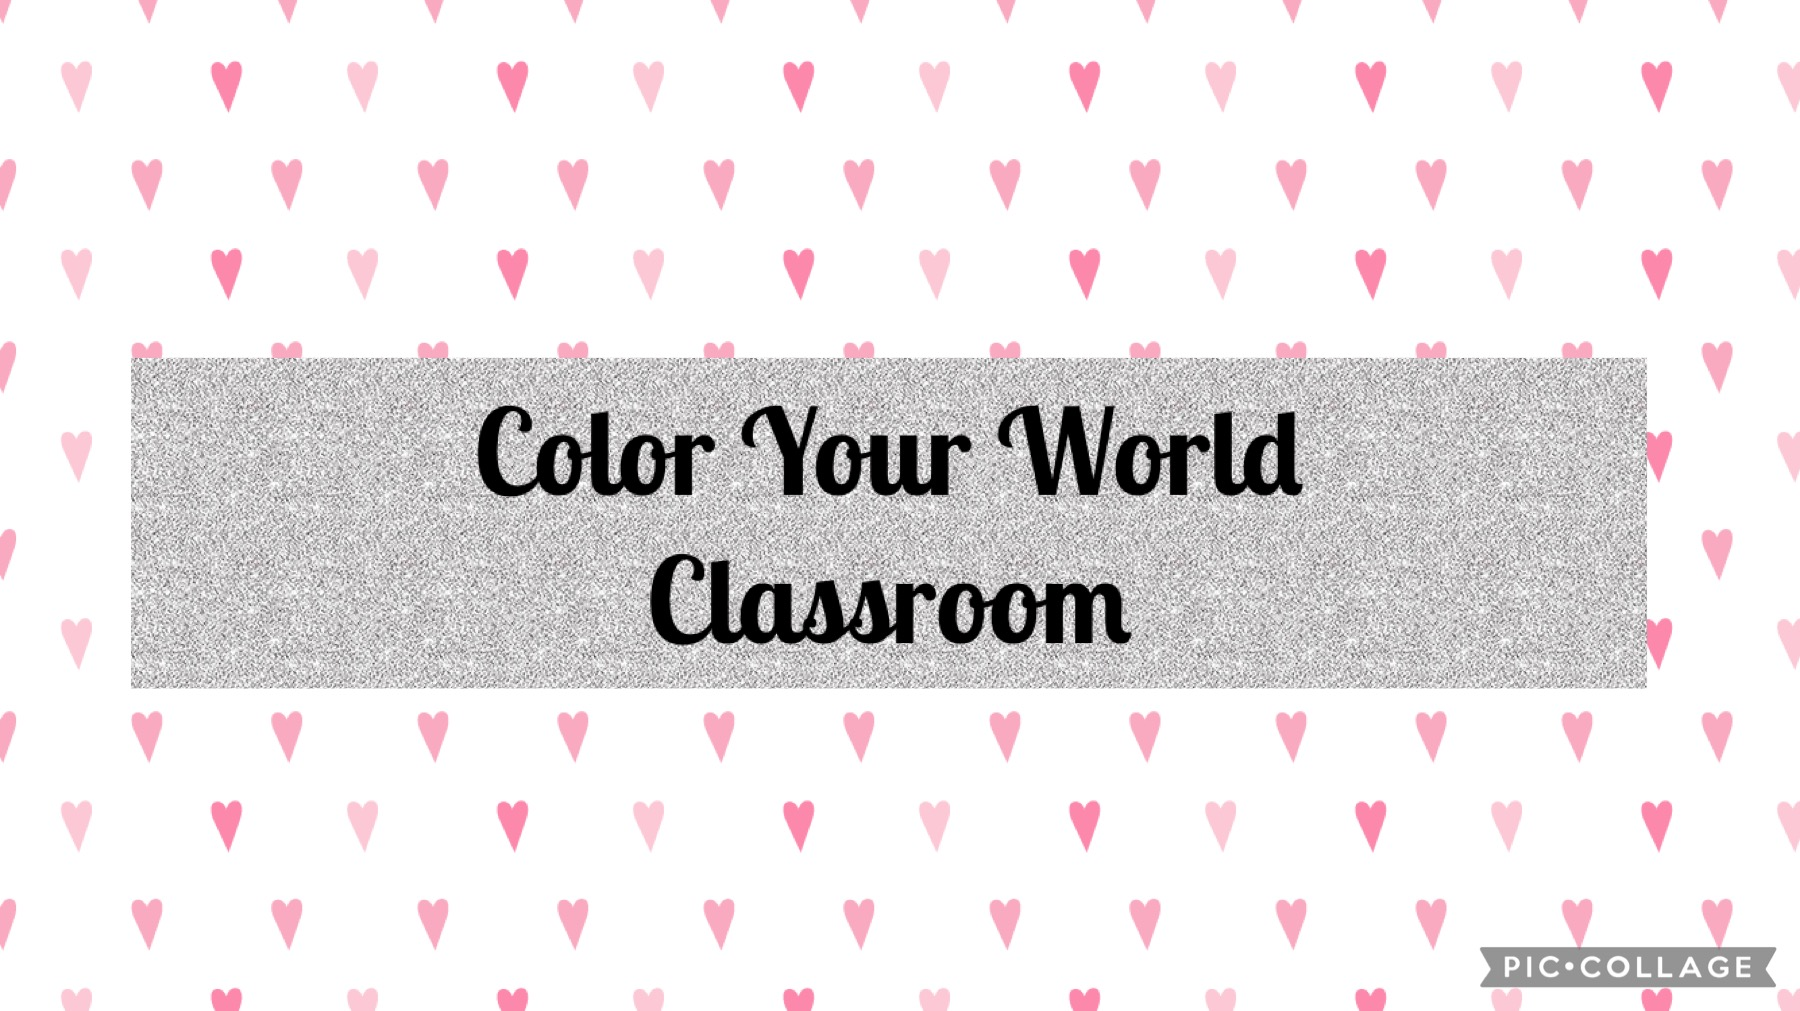 Welcome to Color Your World Classroom!